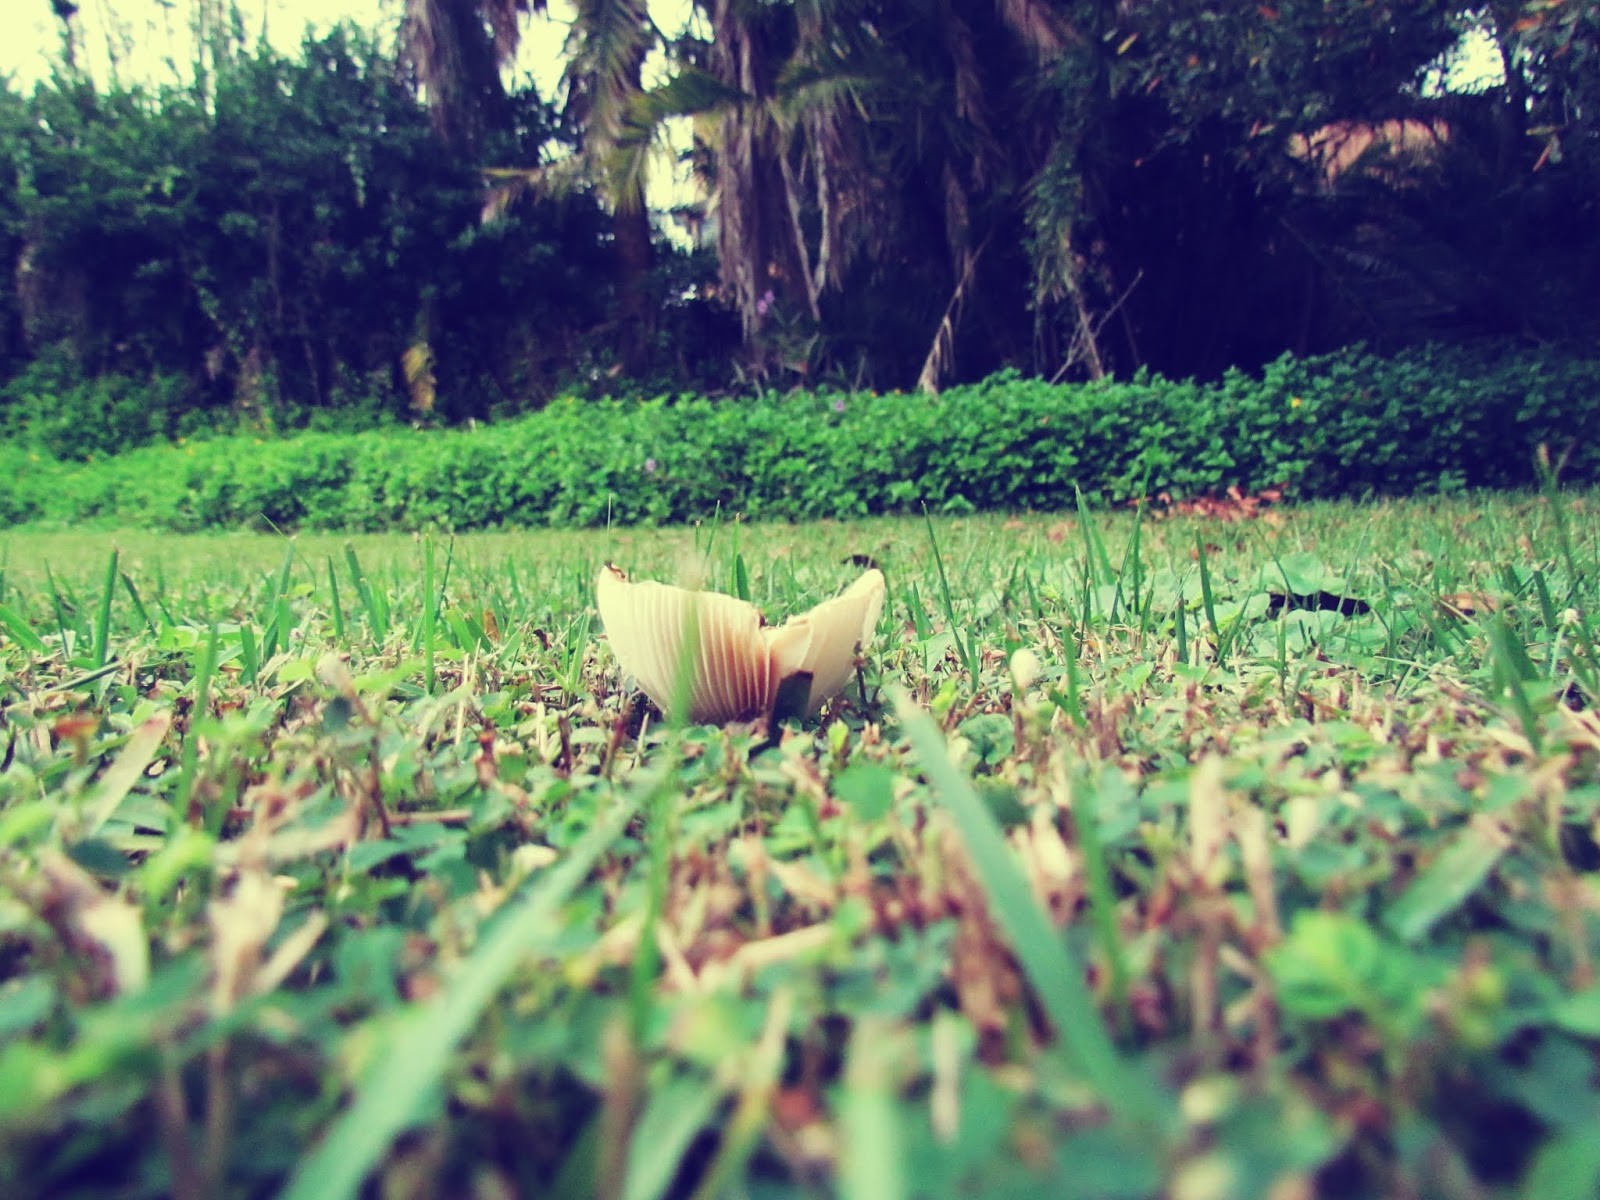 Mushroom Fungi in the Green Grass of Florida Tropical Backyard Paradise and Vacation Escape